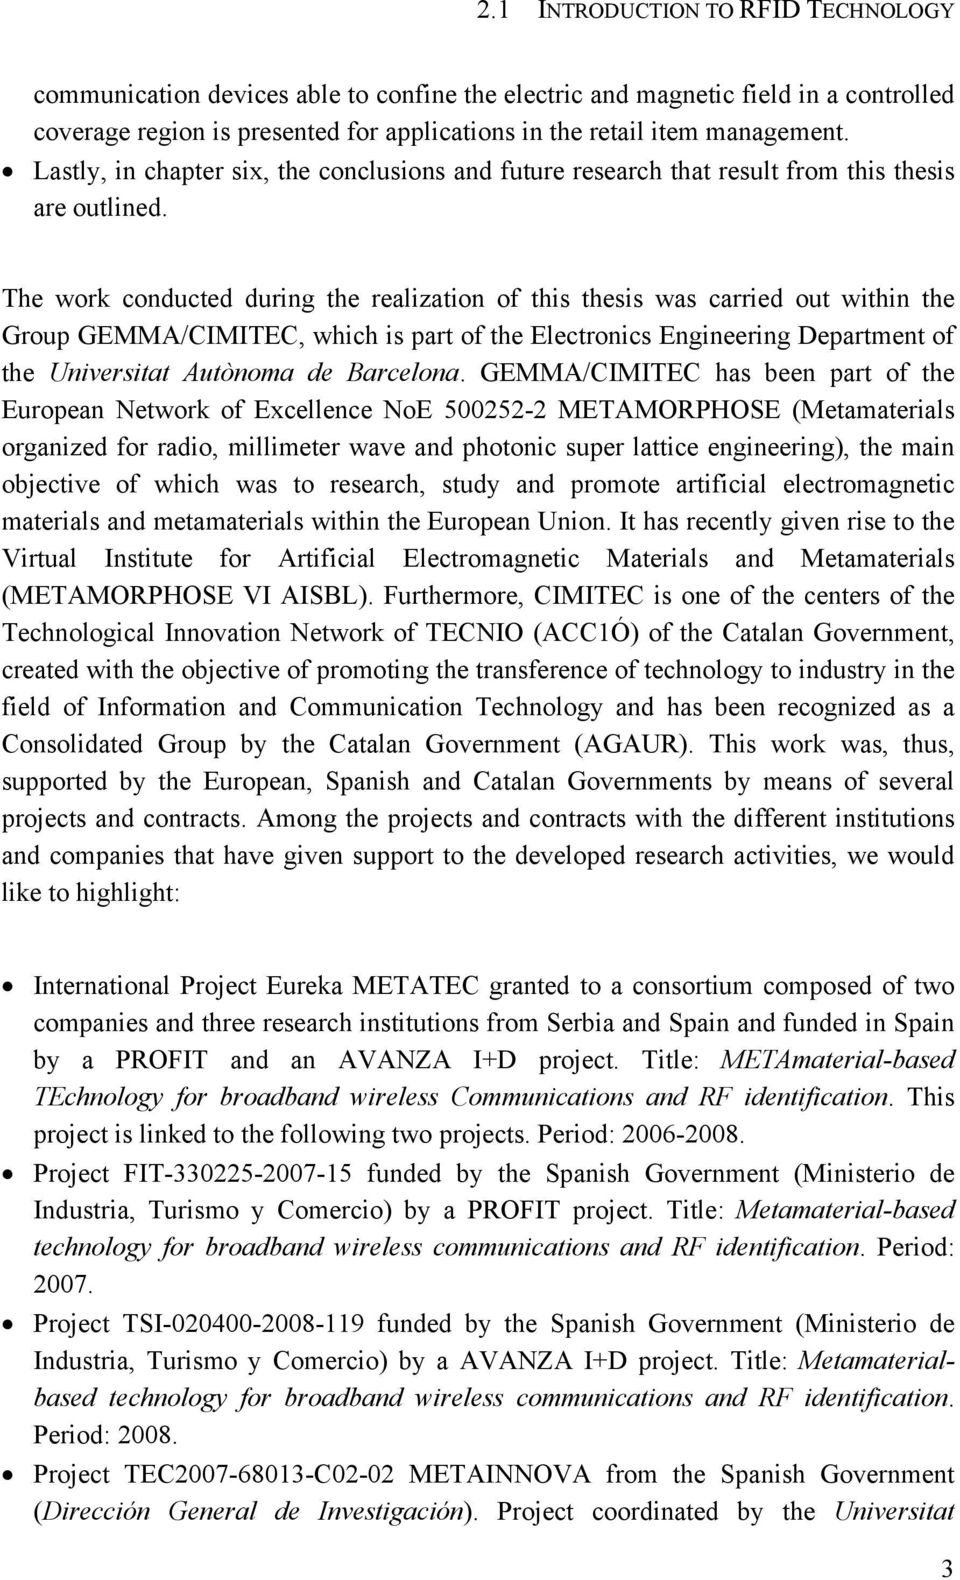 The work conducted during the realization of this thesis was carried out within the Group GEMMA/CIMITEC, which is part of the Electronics Engineering Department of the Universitat Autònoma de